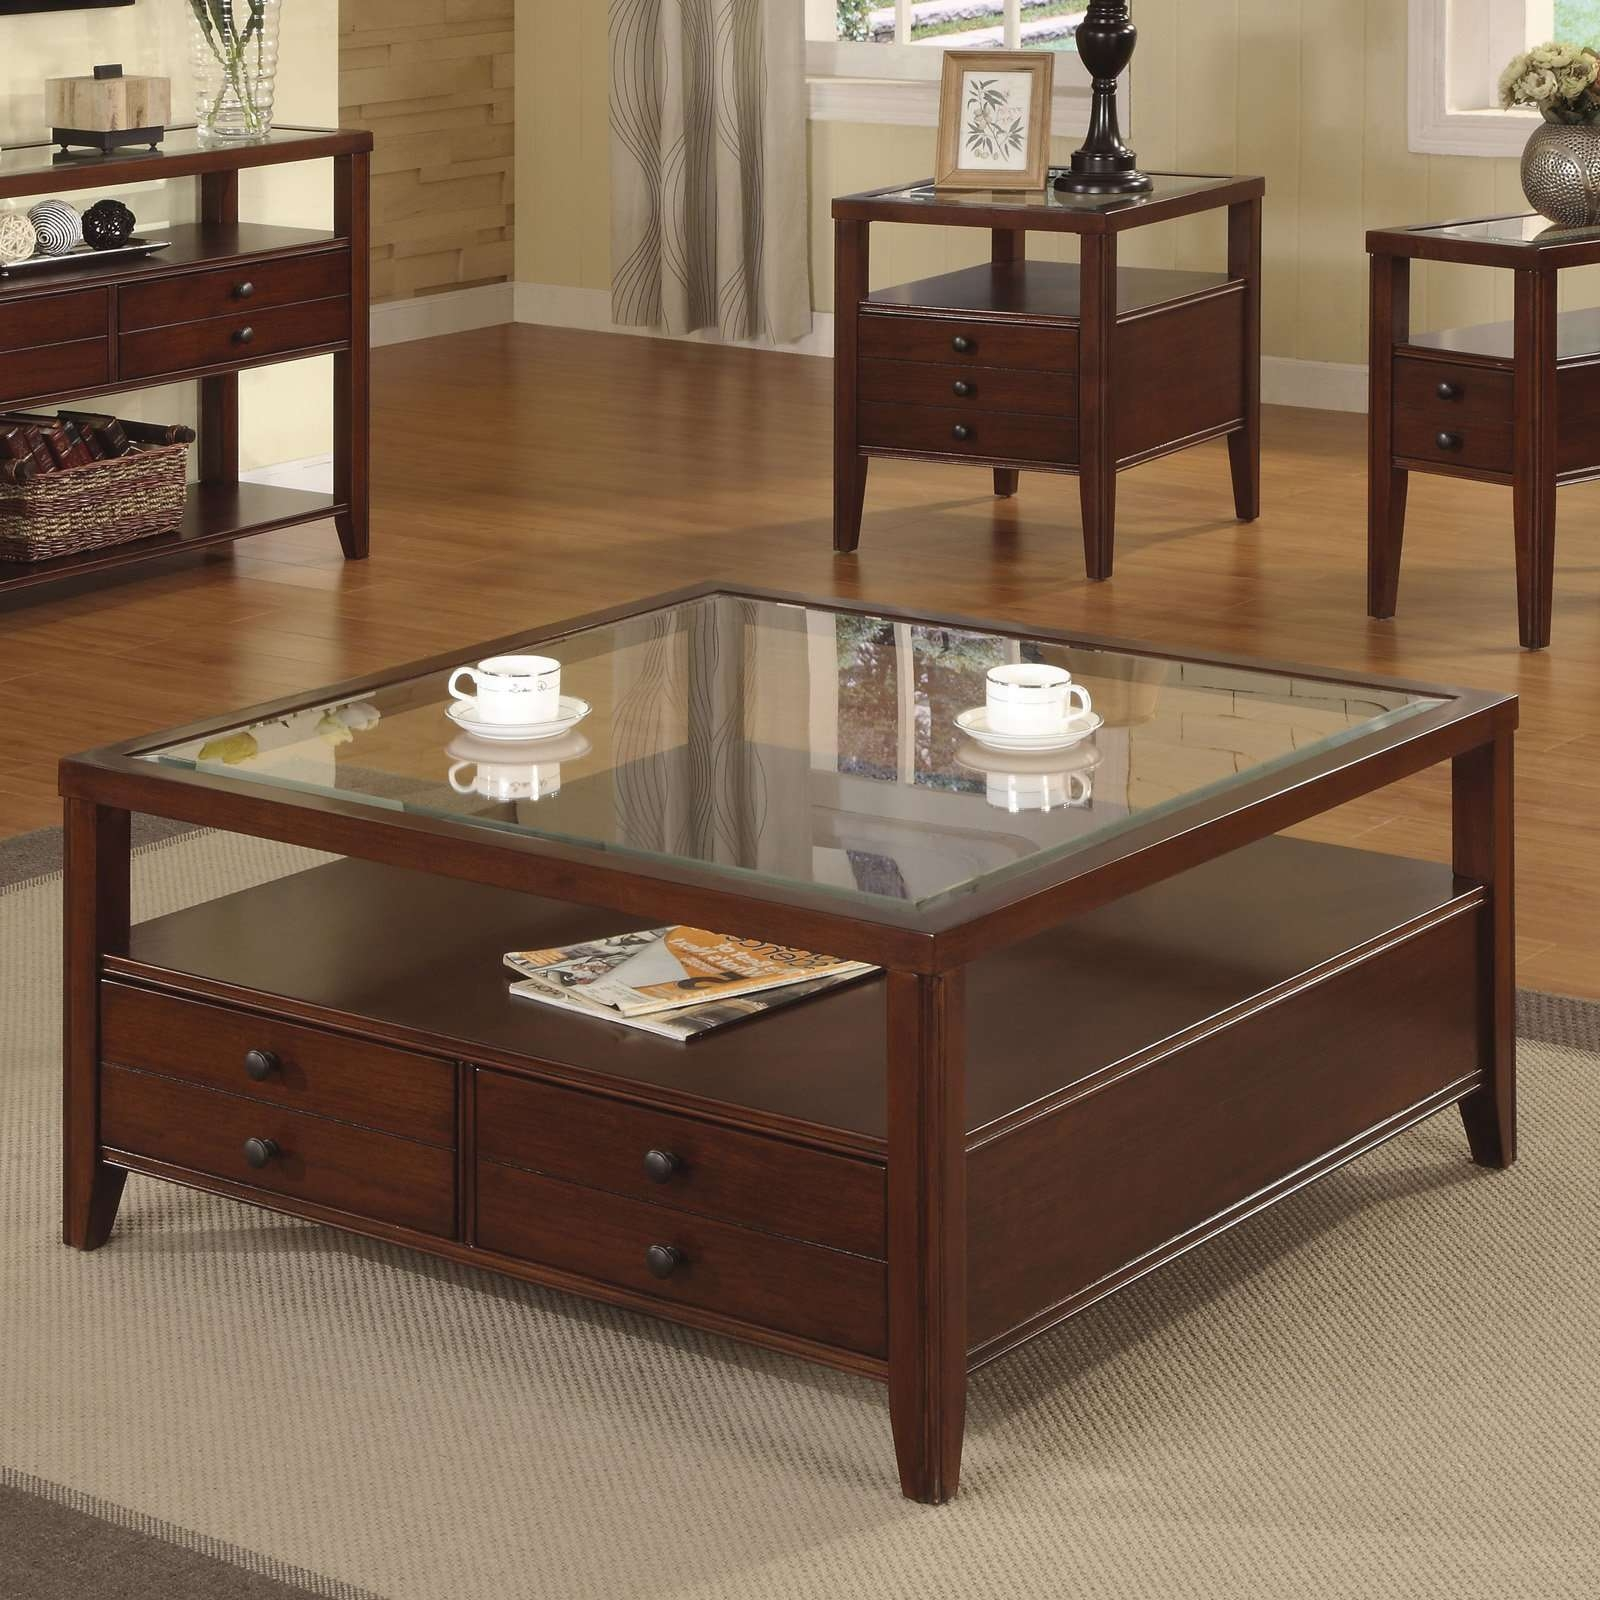 Preferred Square Coffee Tables With Storage Regarding Glass Coffee Tables: Marvellous Square Coffee Table With Glass Top (View 14 of 20)